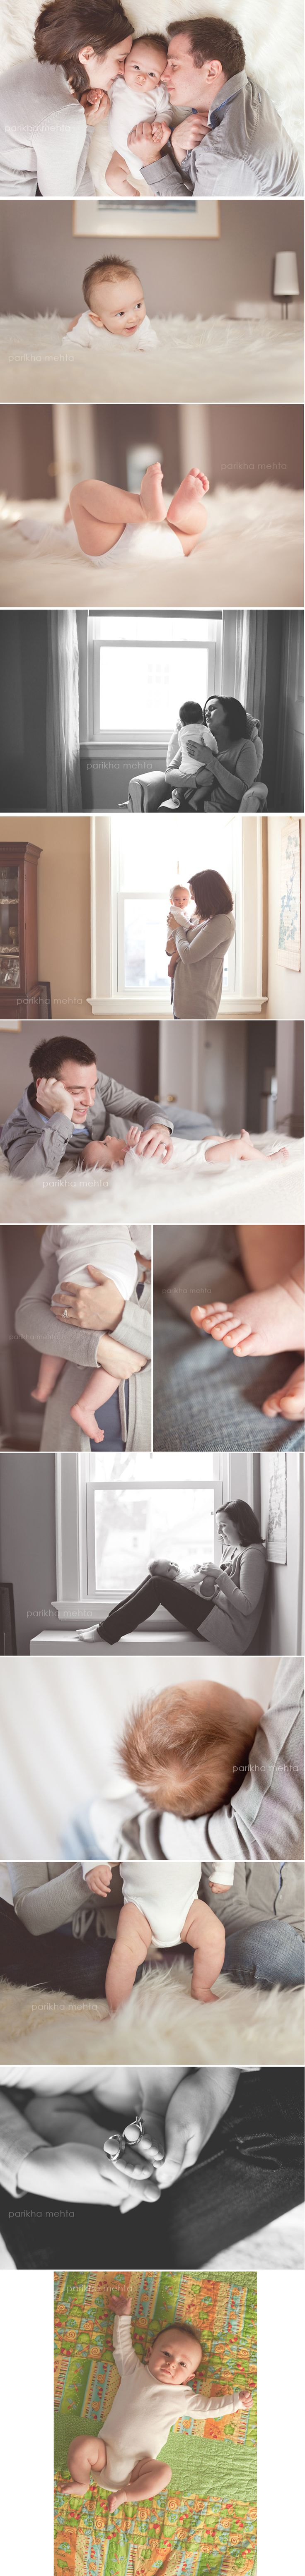 3 month old lifestyle....wish I had a photography friend so I could have cute pictures like this without having to pay thousands of dollars for pictures the first year.